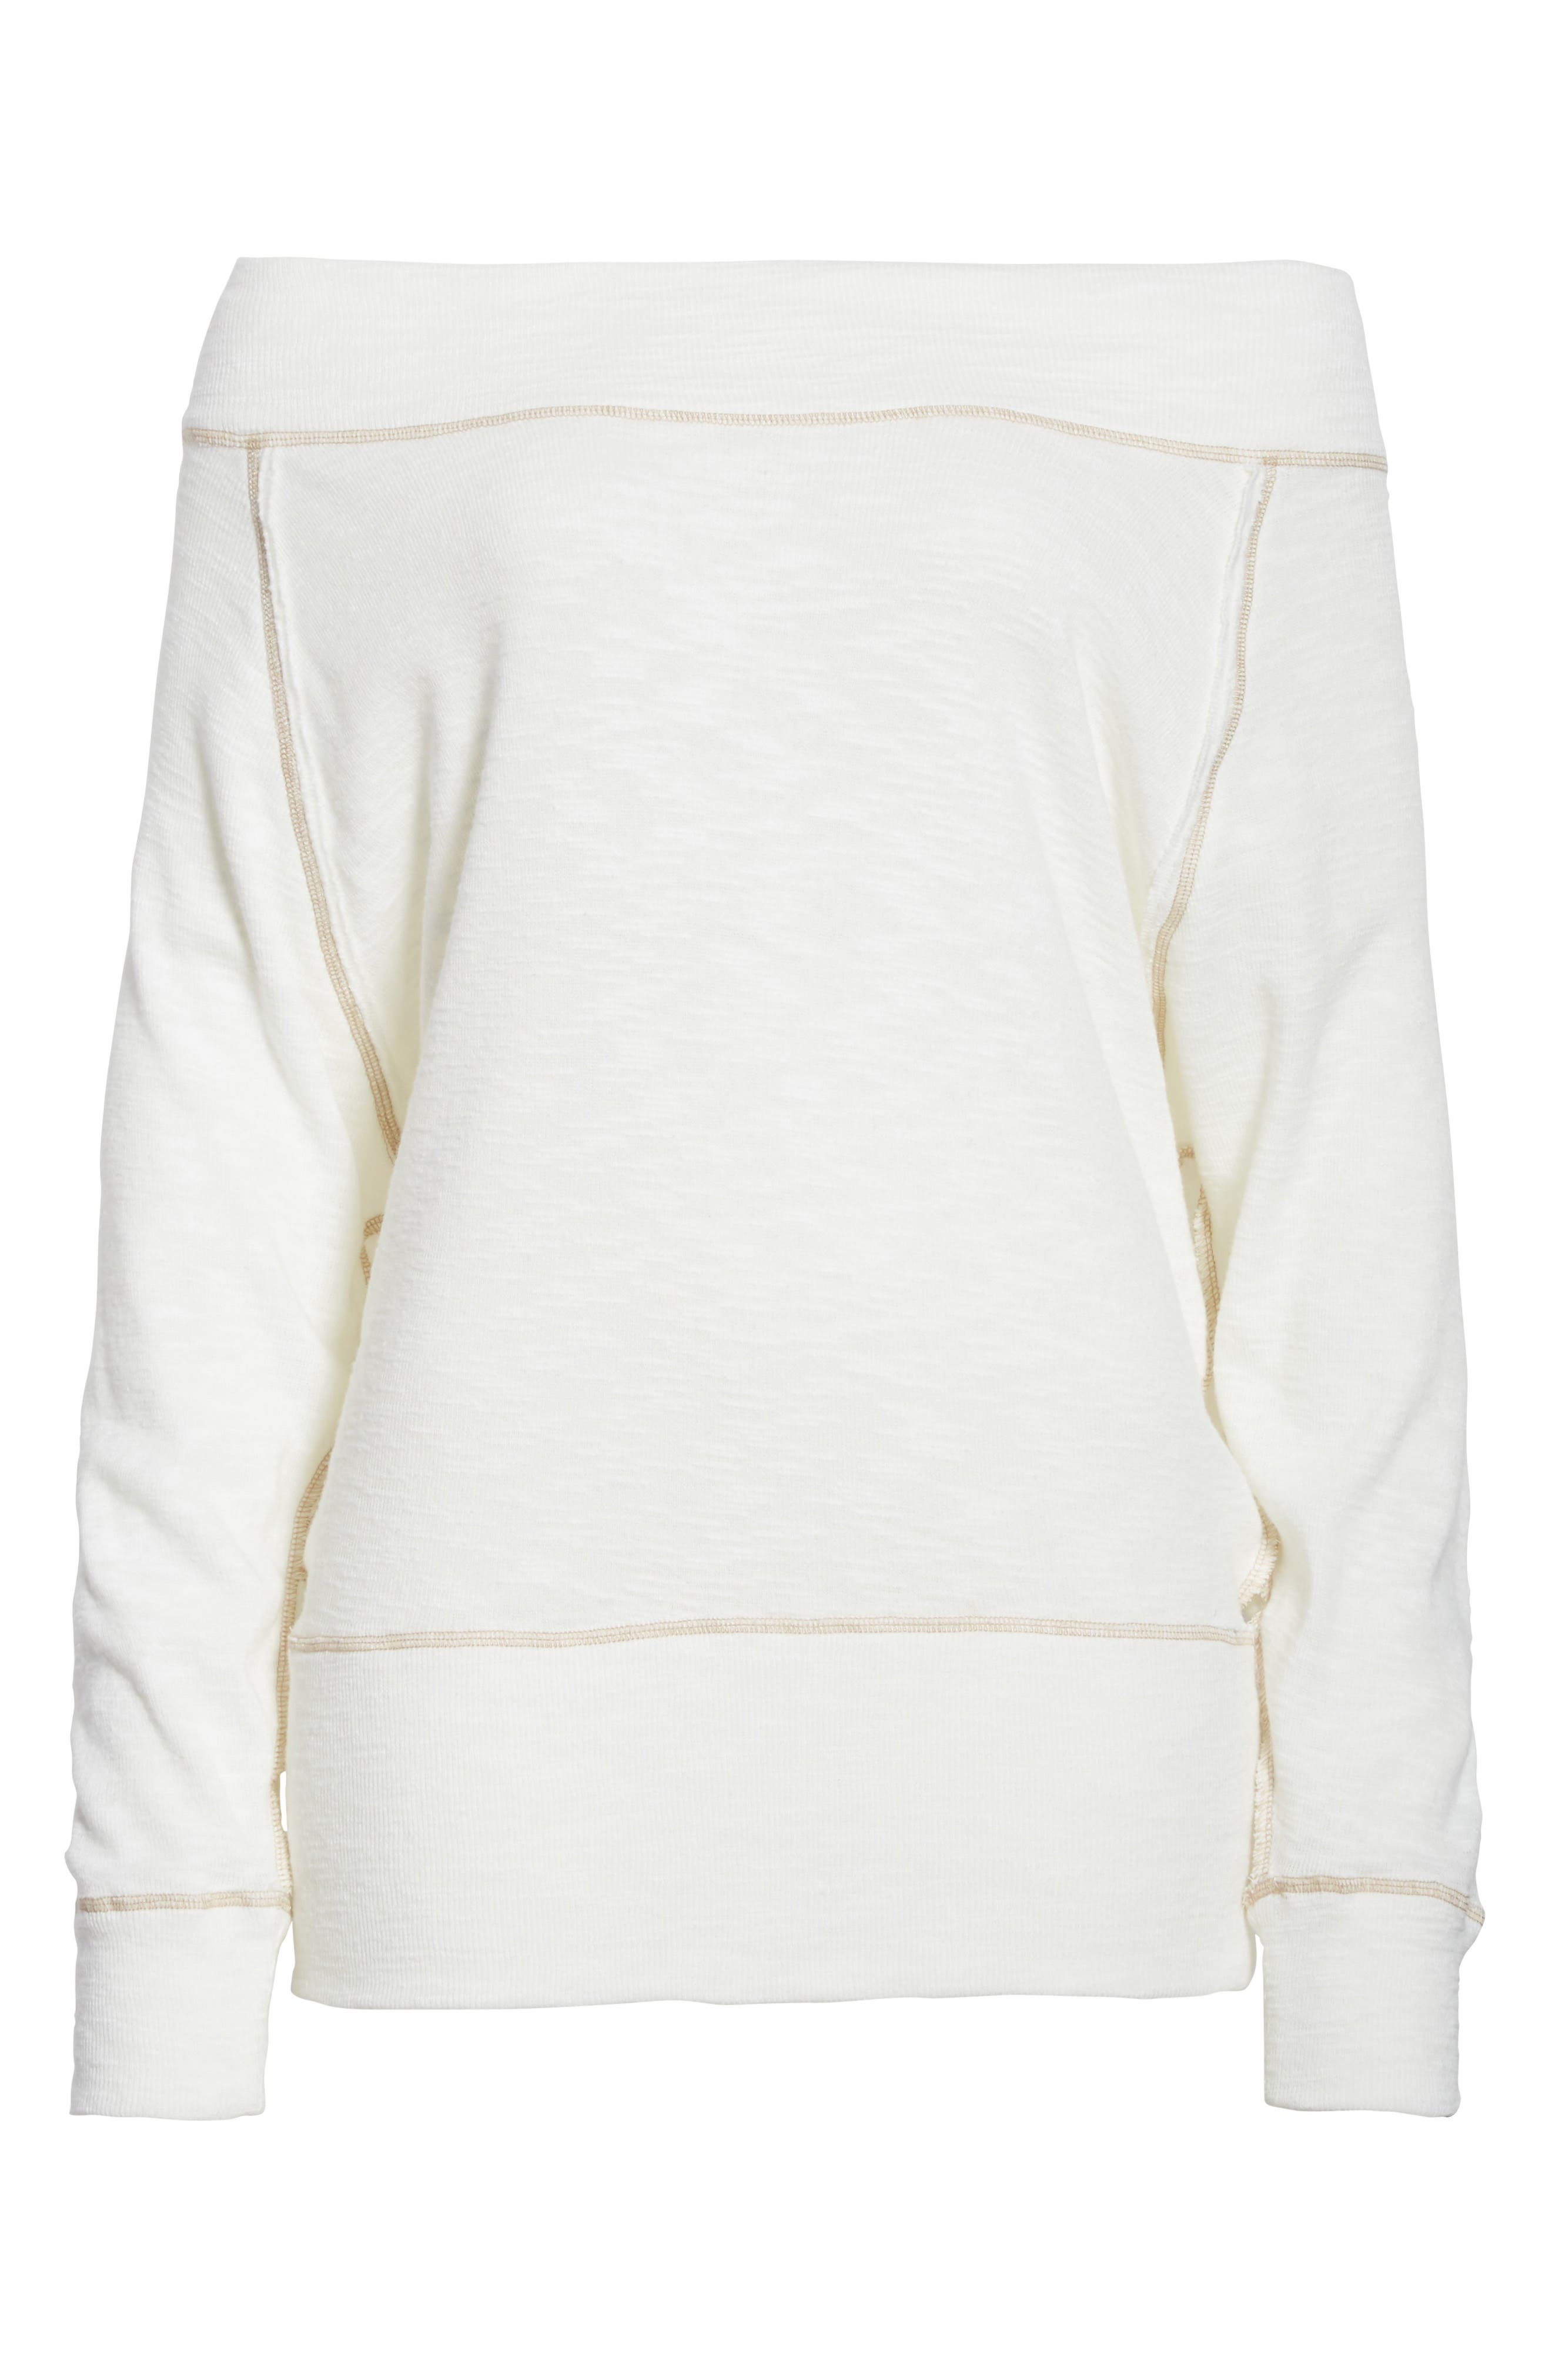 Palisades Off the Shoulder Top,                             Alternate thumbnail 6, color,                             Ivory